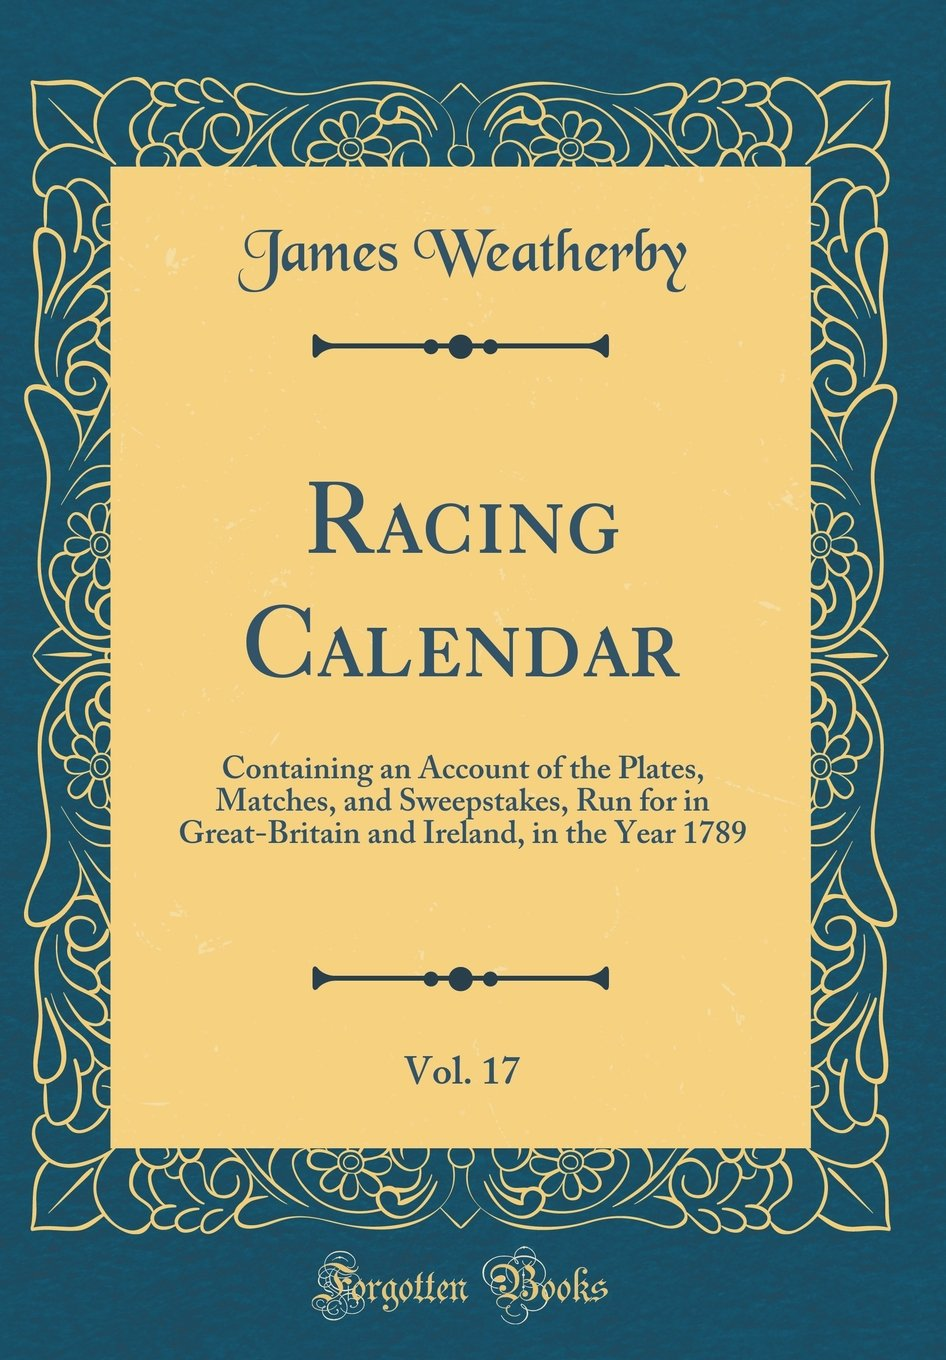 Read Online Racing Calendar, Vol. 17: Containing an Account of the Plates, Matches, and Sweepstakes, Run for in Great-Britain and Ireland, in the Year 1789 (Classic Reprint) pdf